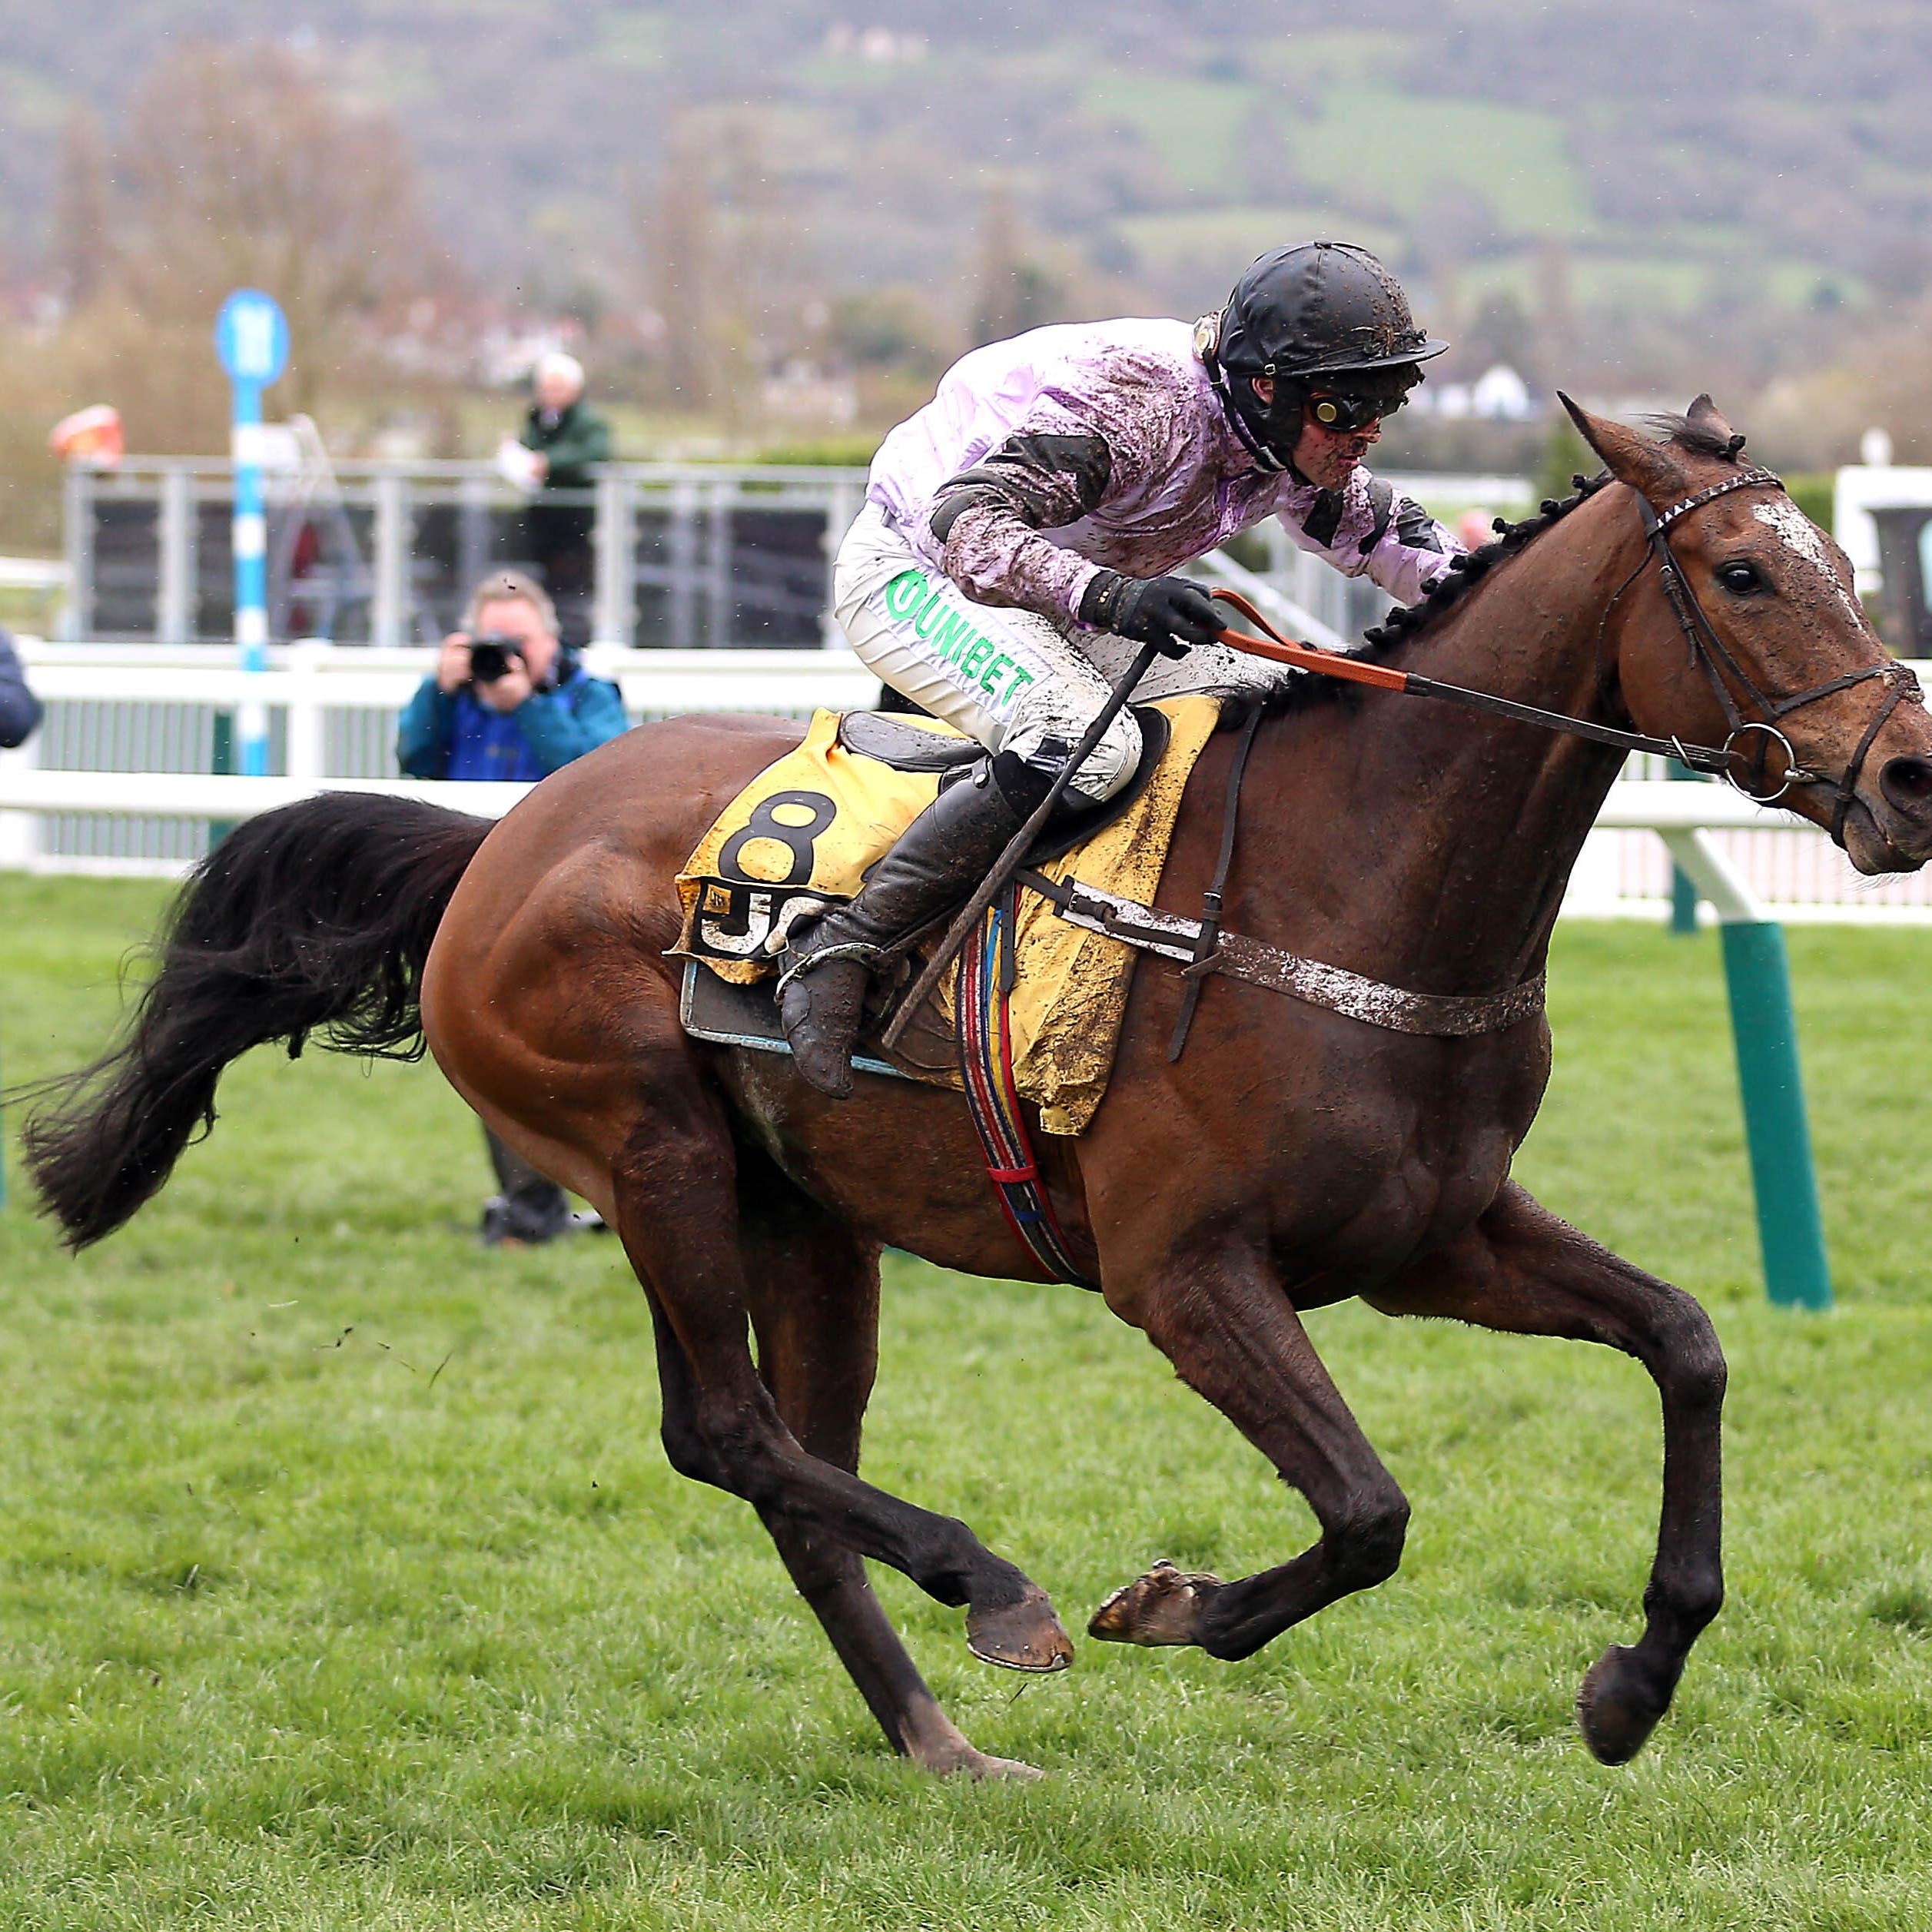 Pentland Hills powers up the hill to win the Triumph Hurdle